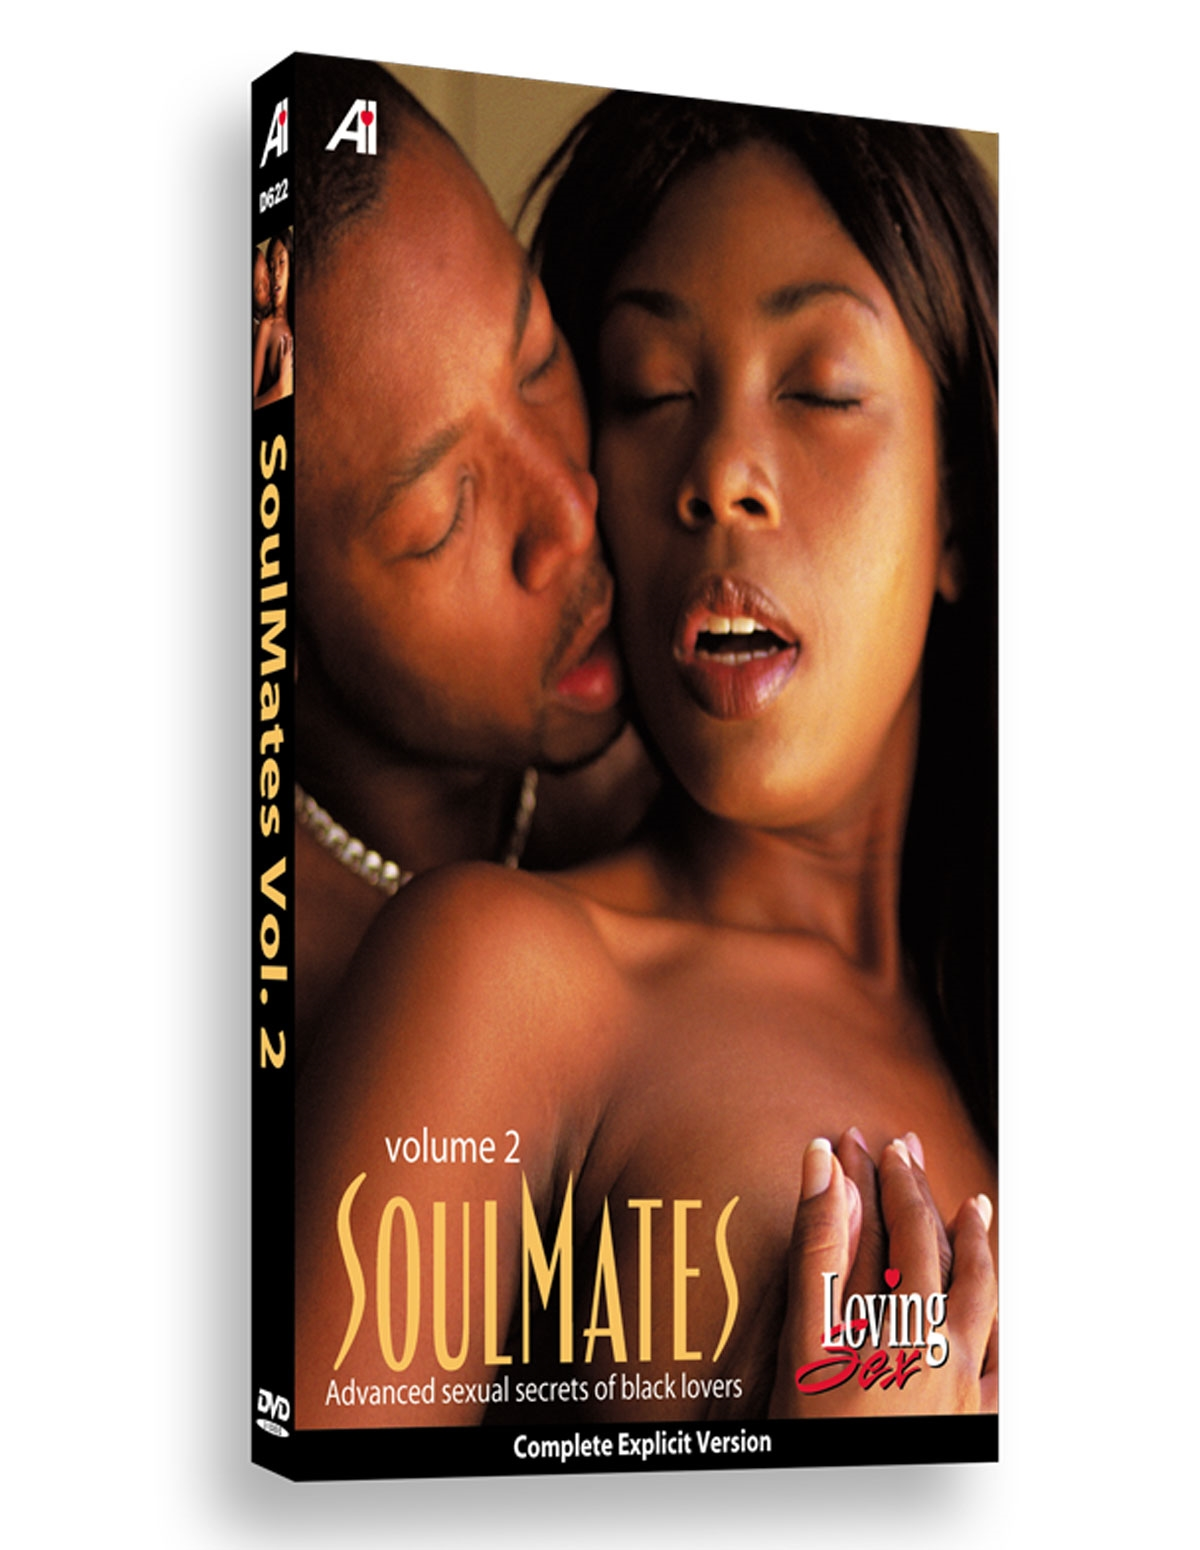 Soulmates Volume 2 Explicit